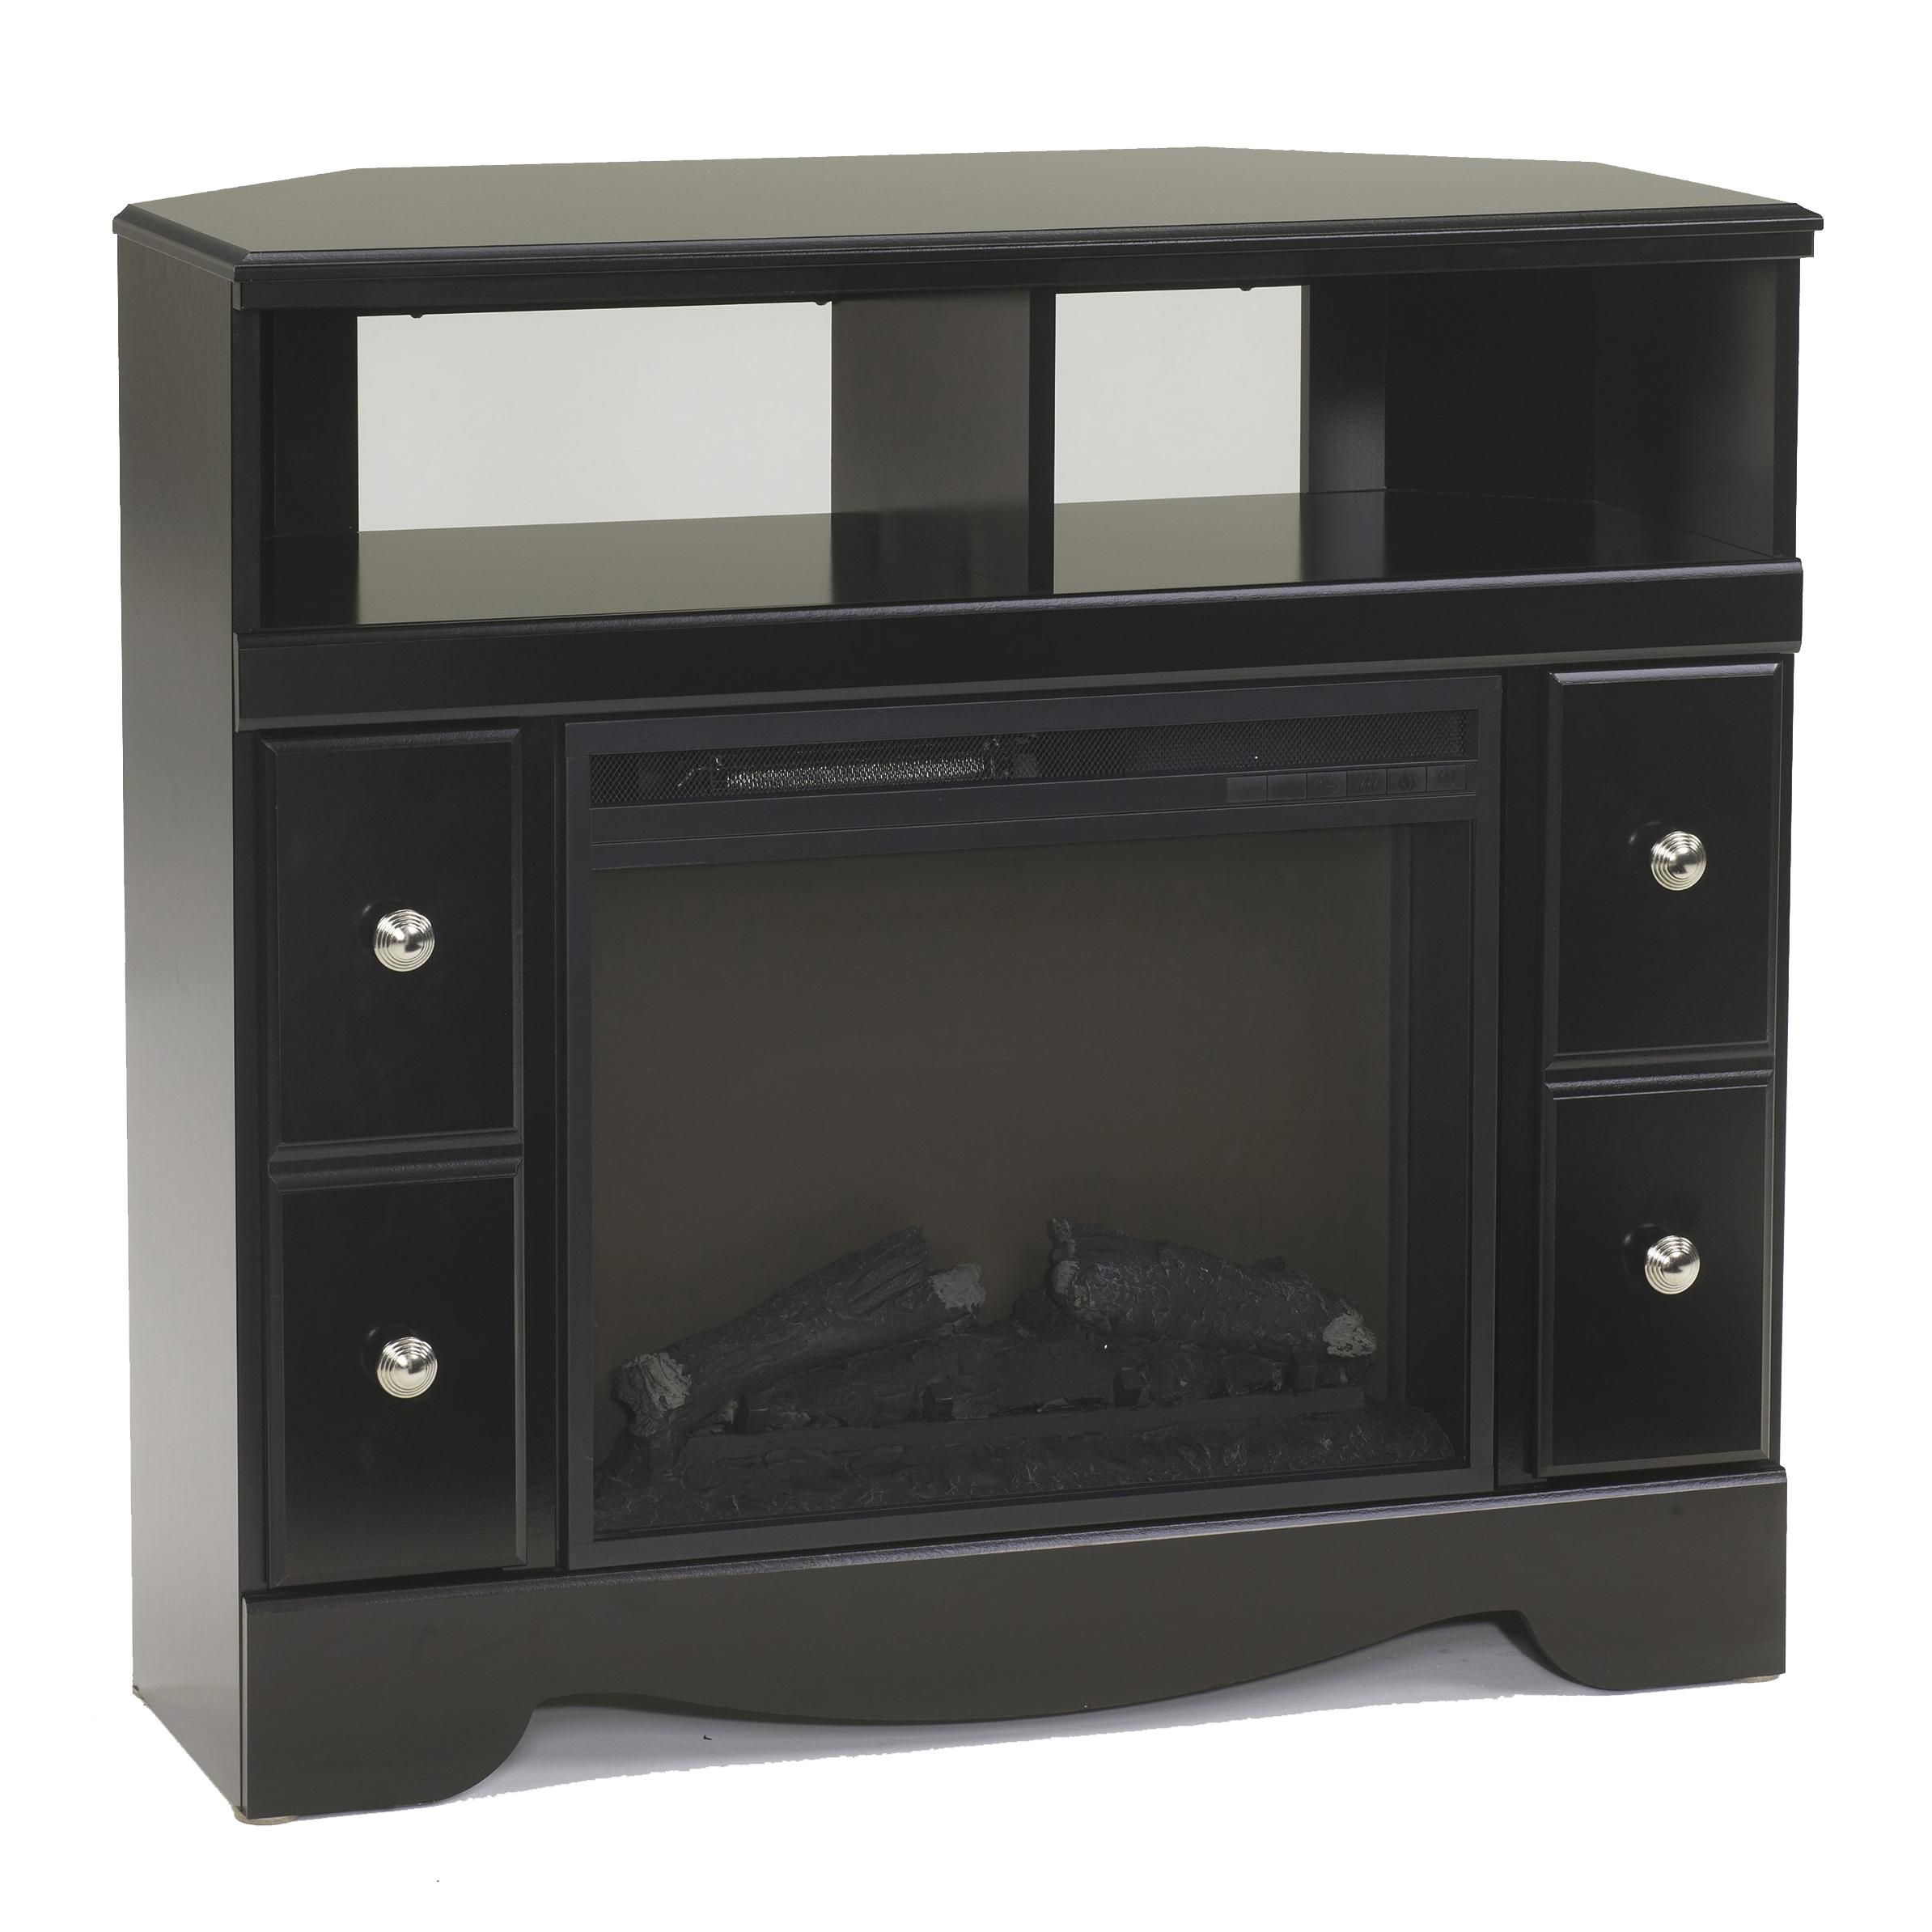 Shay Corner Tv Stand Fireplace By Signature Design By Ashley